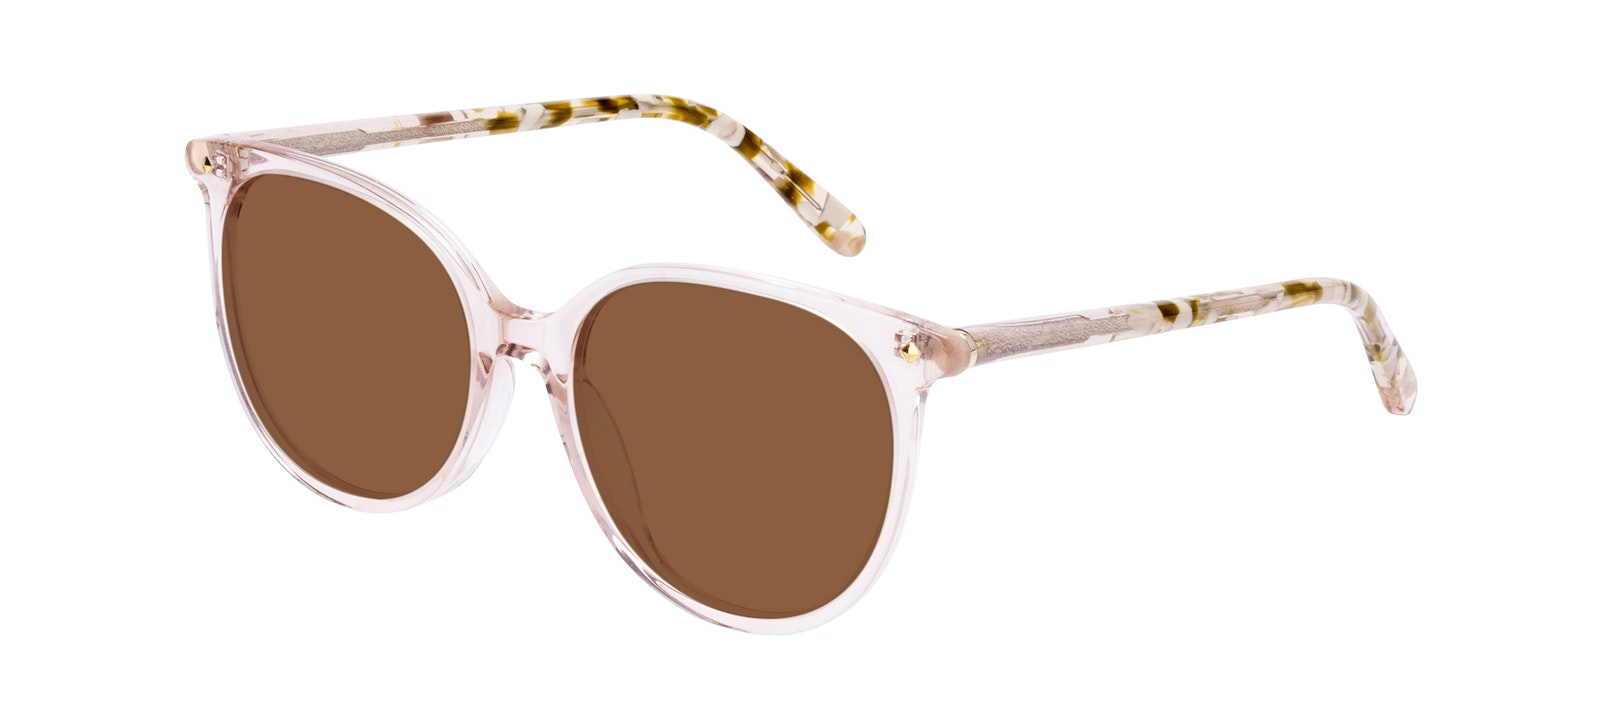 Affordable Fashion Glasses Round Sunglasses Women Area Petite Rose Tilt